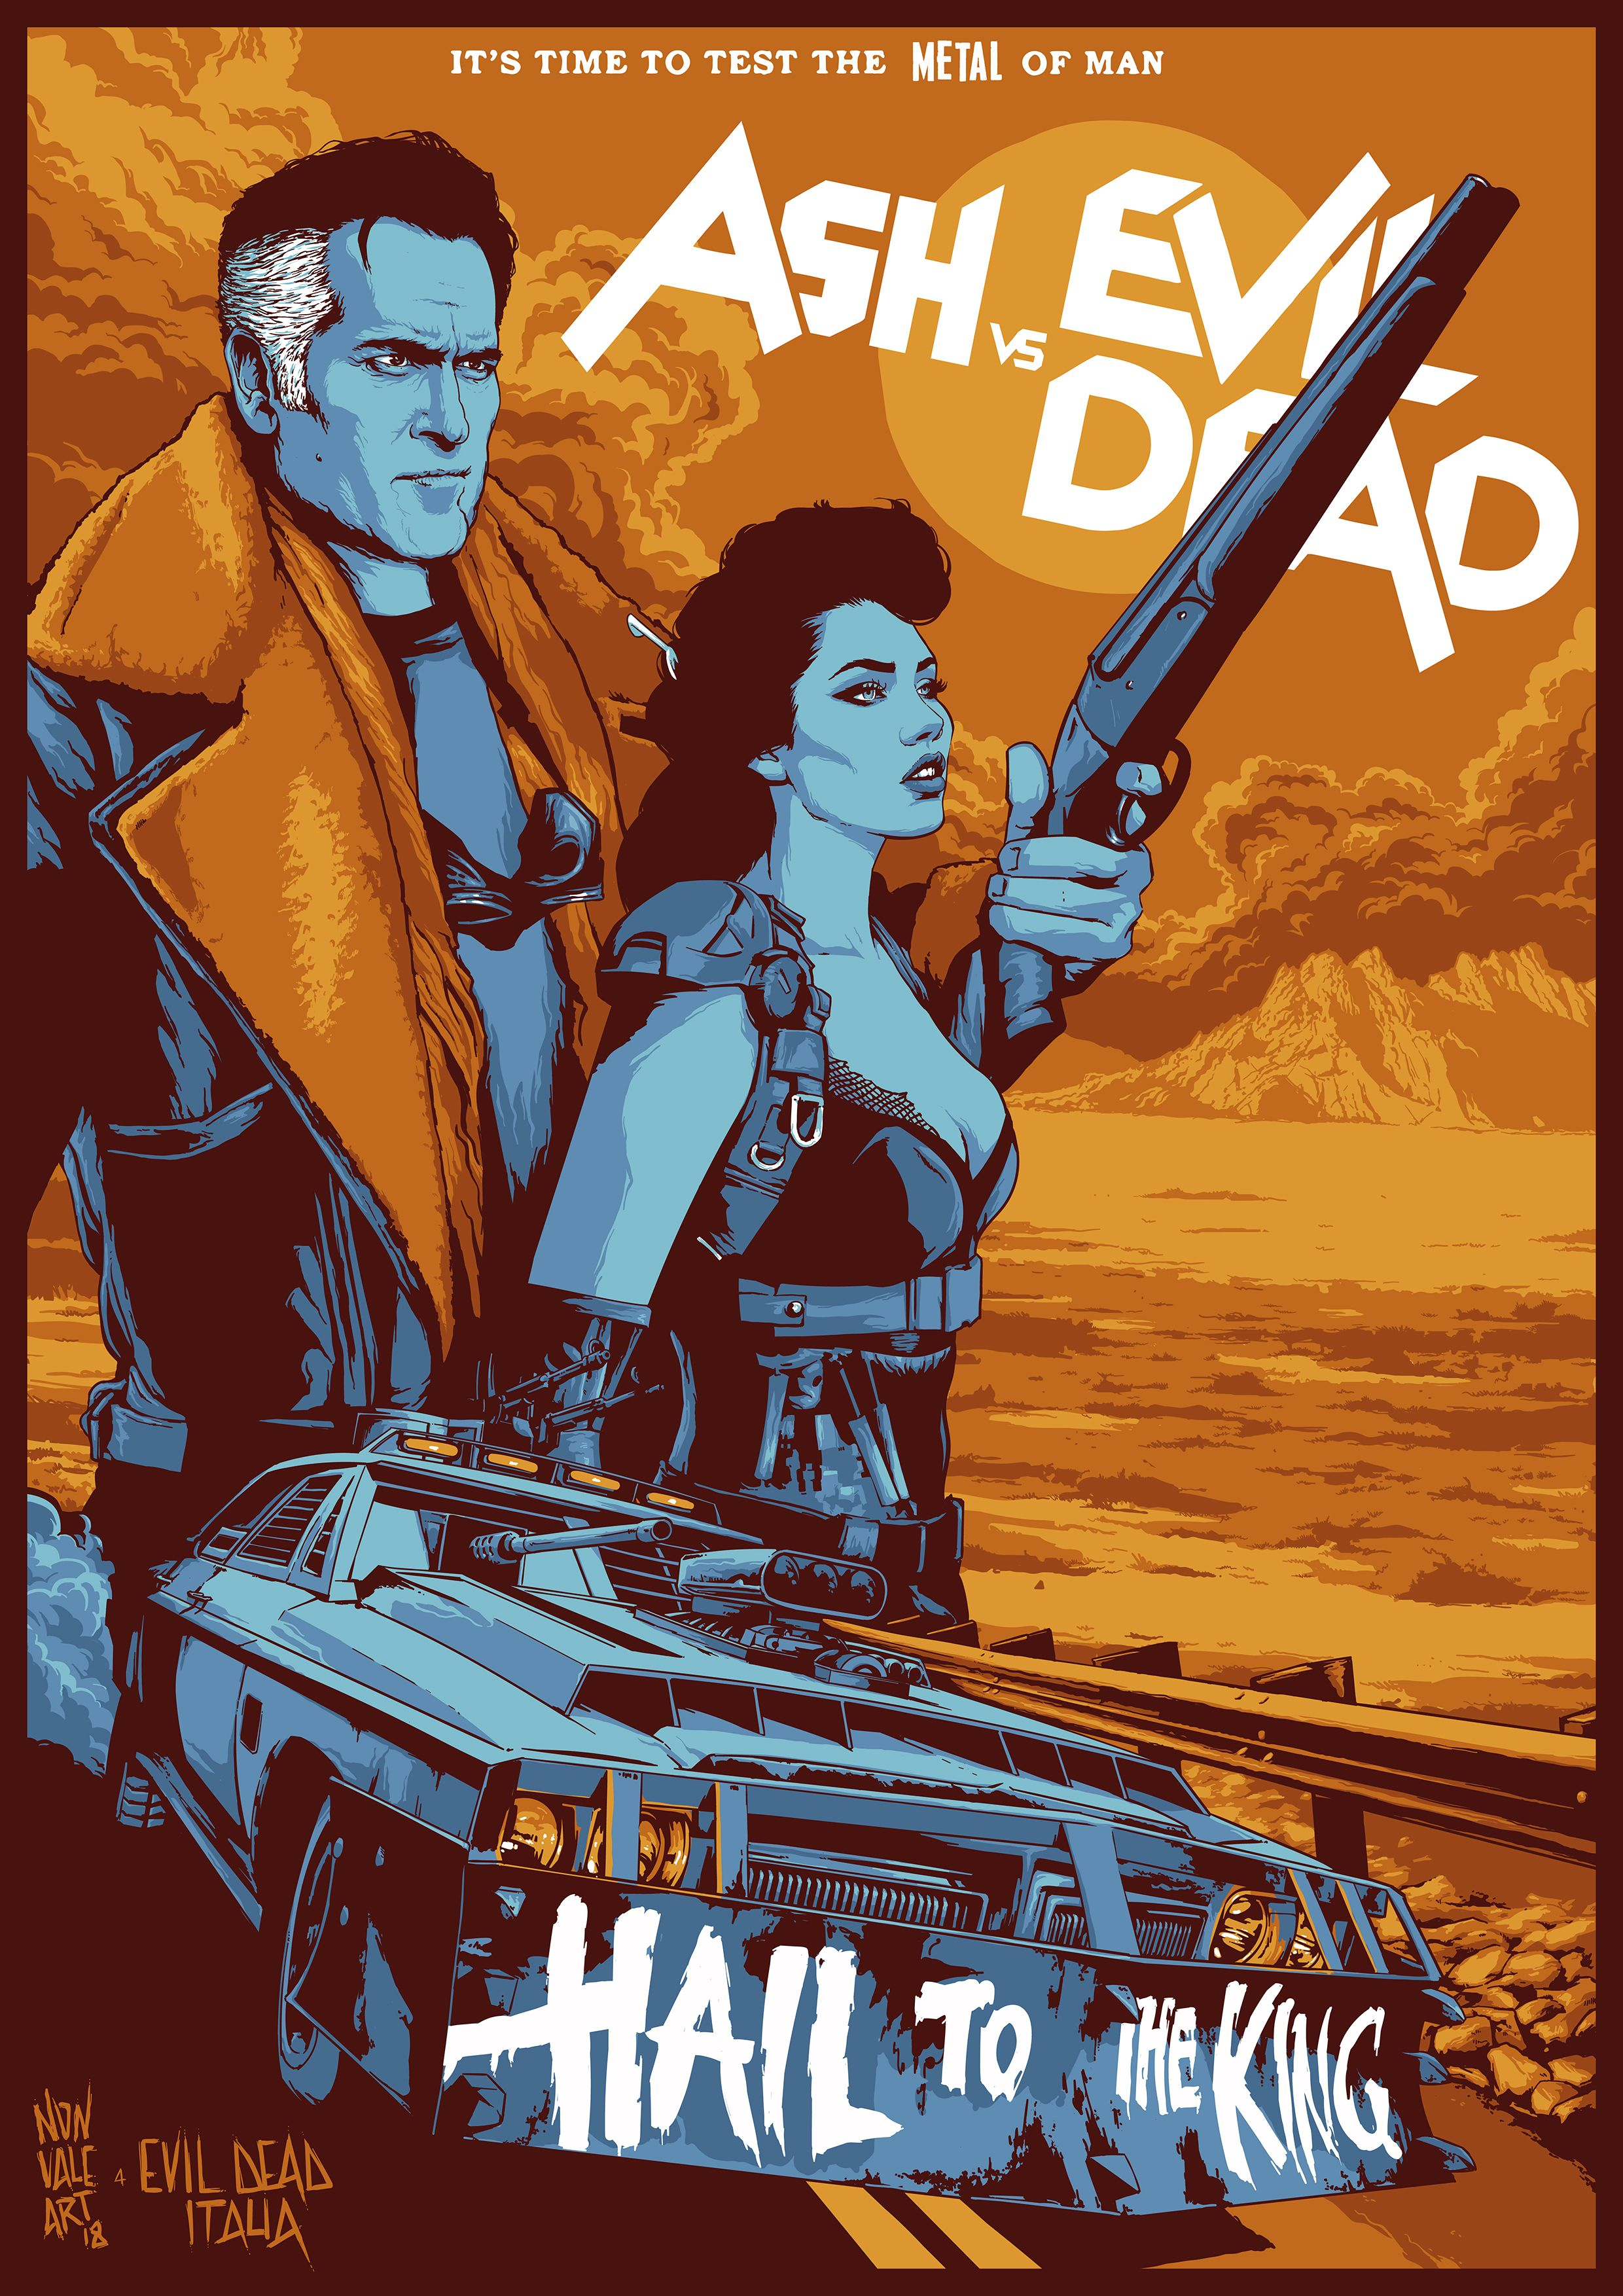 This Is A Poster To Celebrate The Final Of The Third Season Of Ash Vs Evil Dead The Series Of Bruce Ca Evil Dead Movies Ash Evil Dead Bruce Campbell Evil